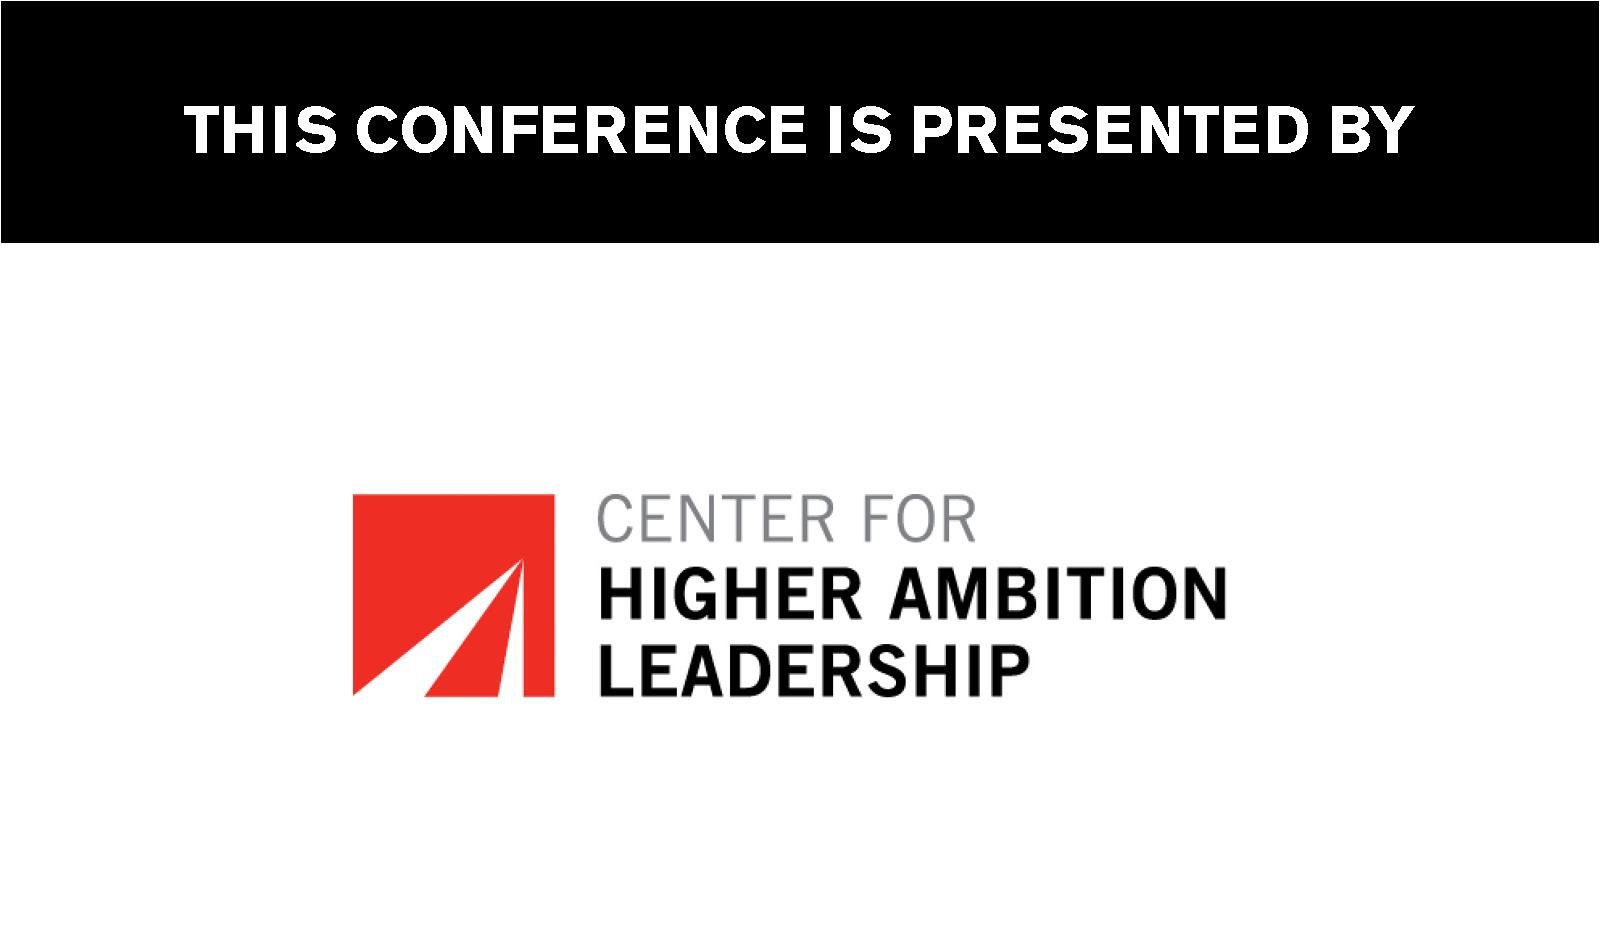 Center for Higher Ambition Leadership Europe